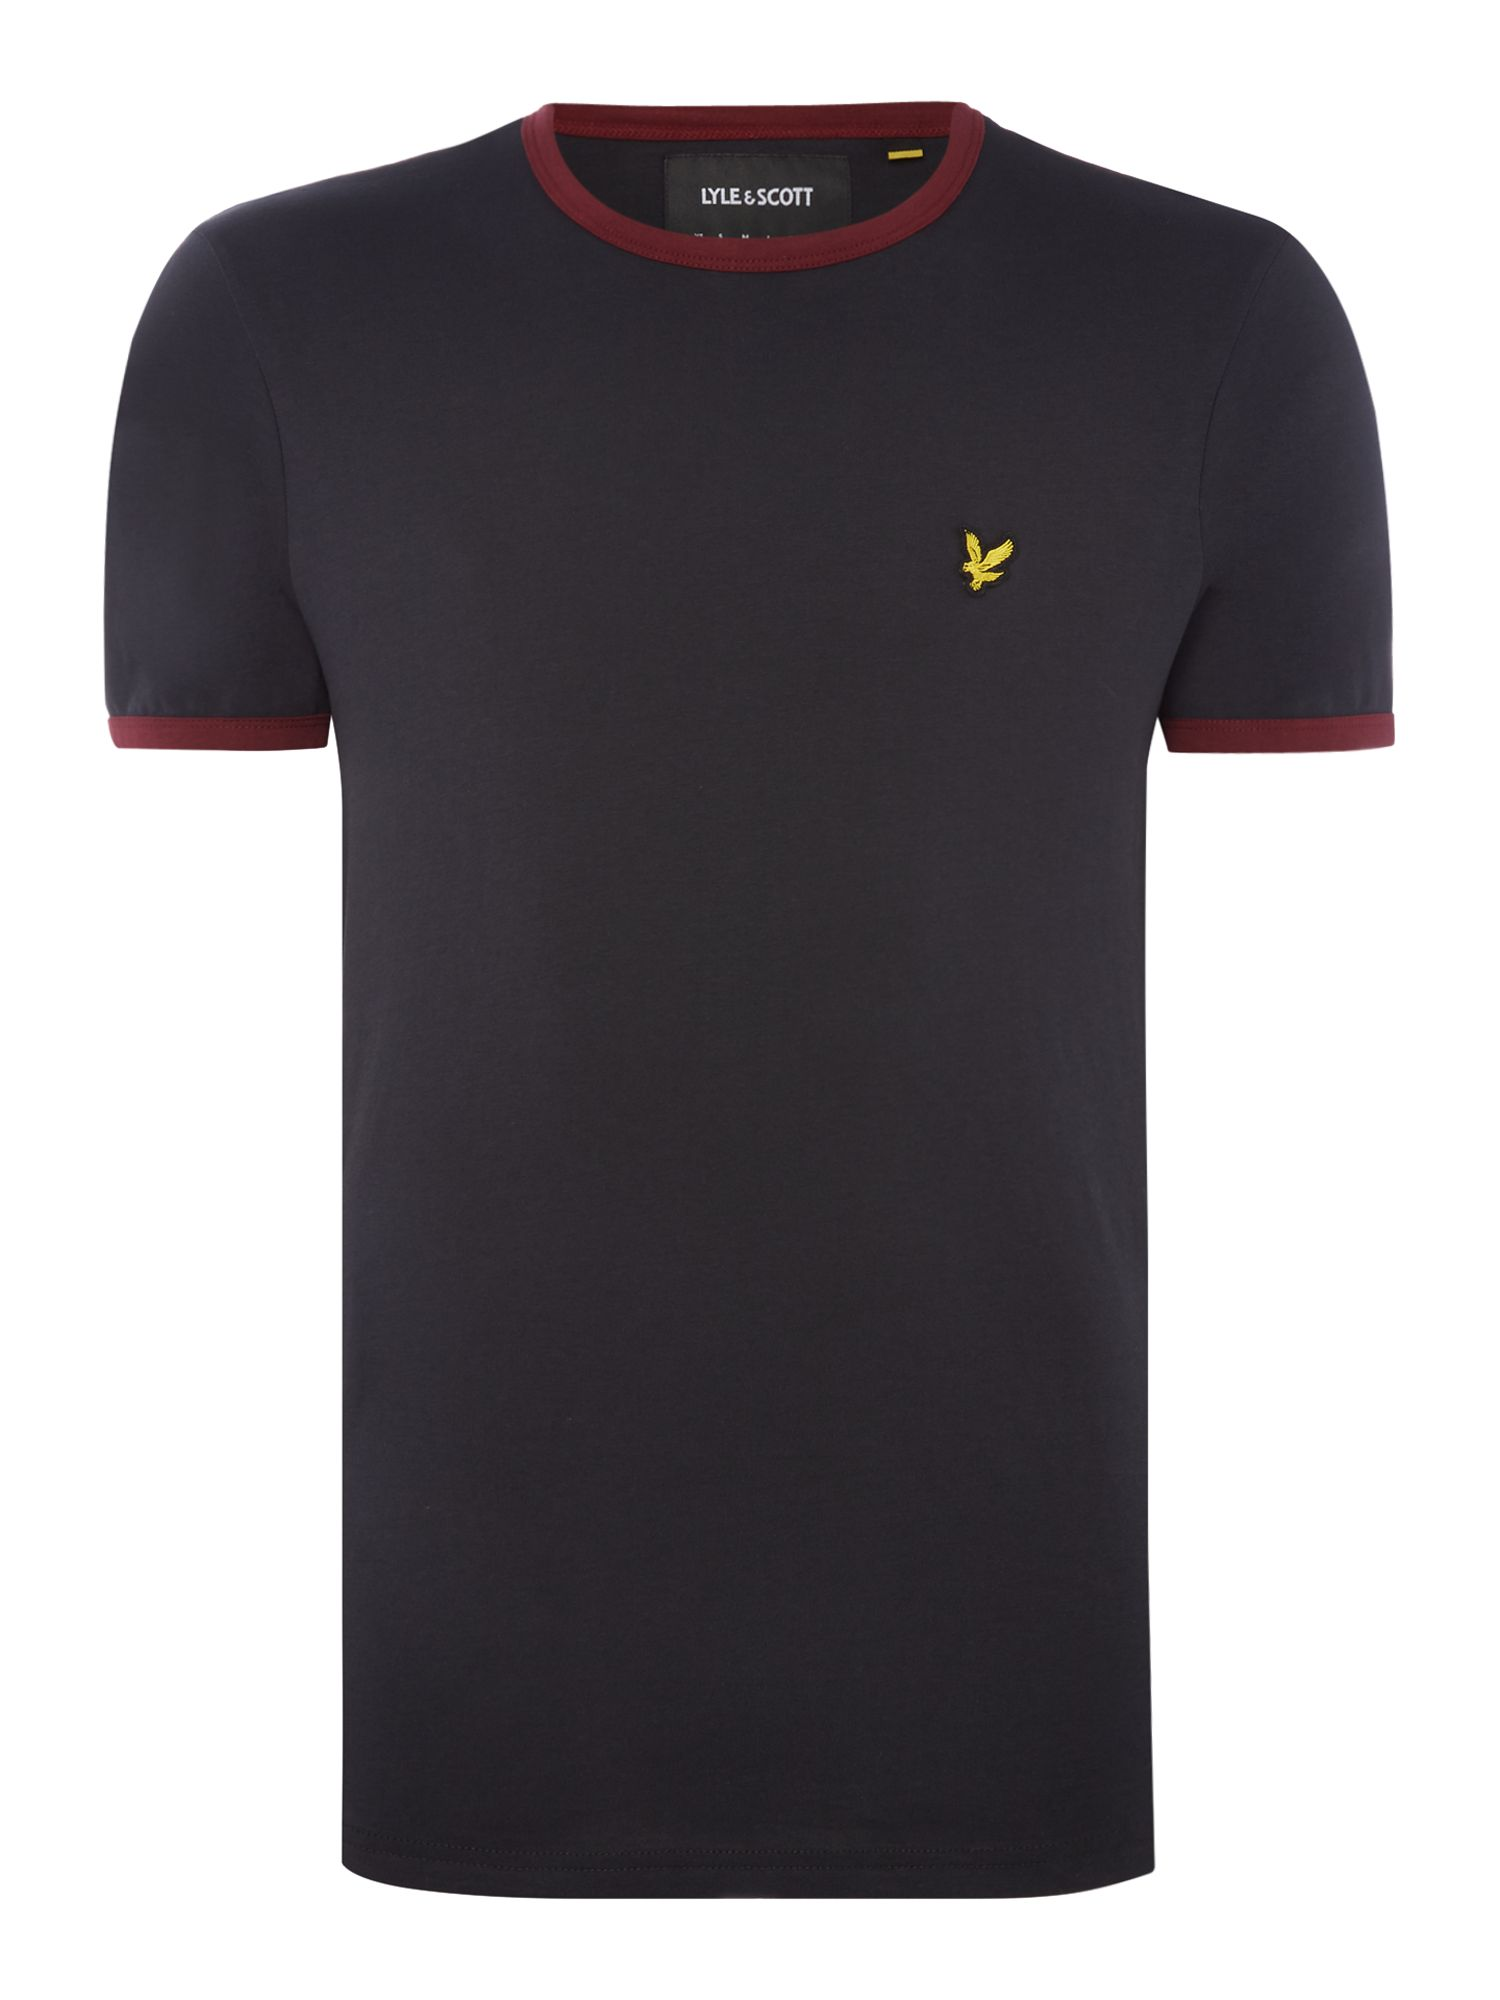 Men's Lyle and Scott Ringer crew neck short sleeve t-shirt, Black